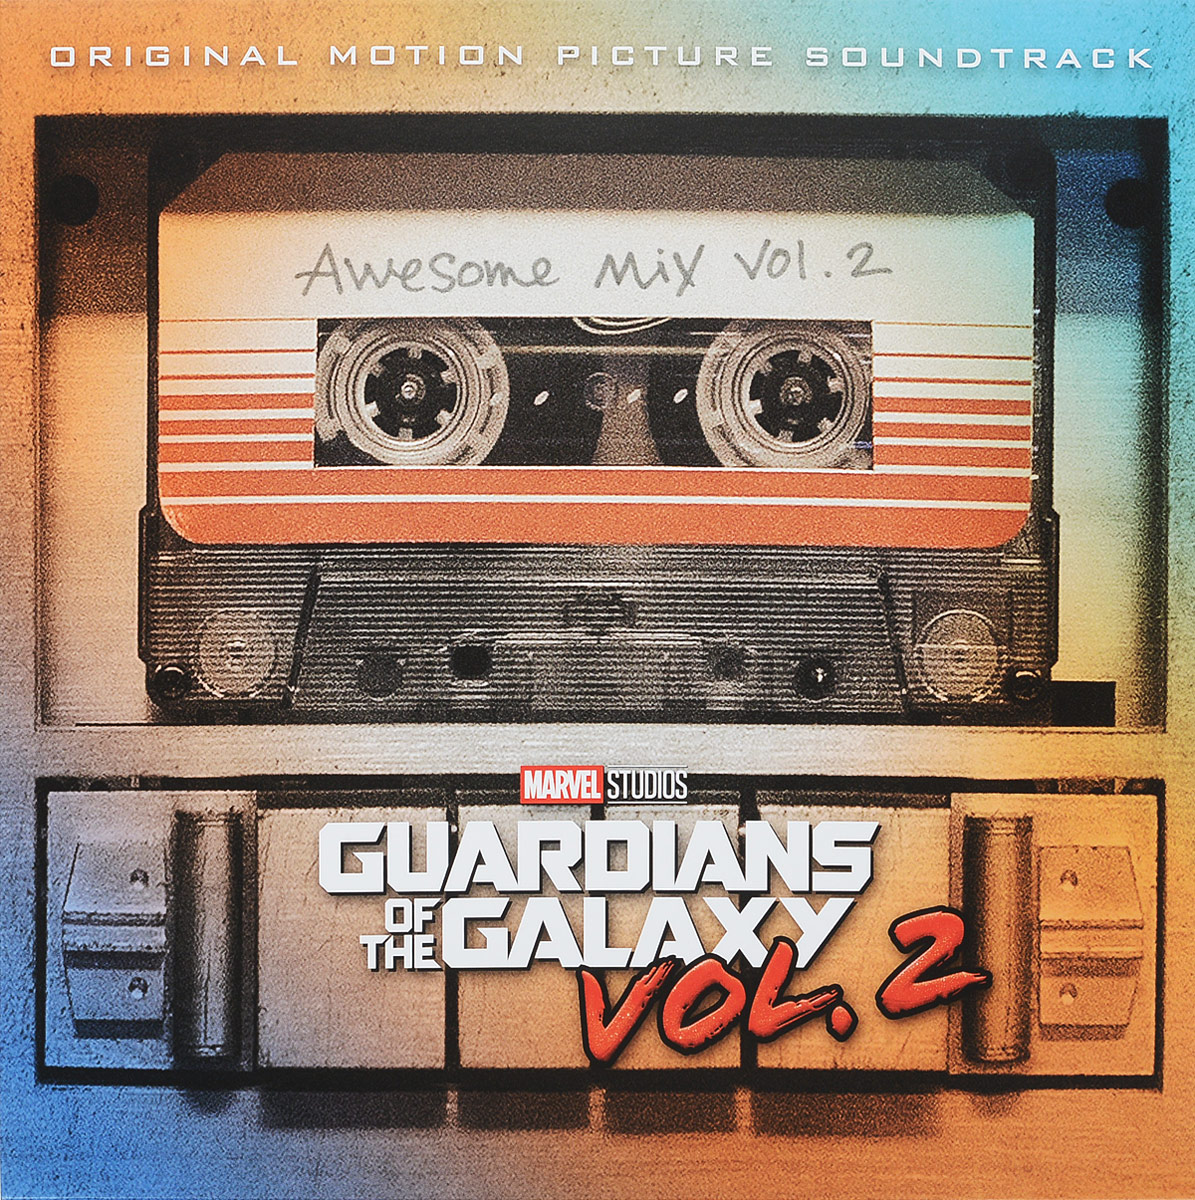 Guardians Of The Galaxy Vol. 2: Awesome Mix Vol. 2 (LP) майка классическая printio guardians of the galaxy vol 2